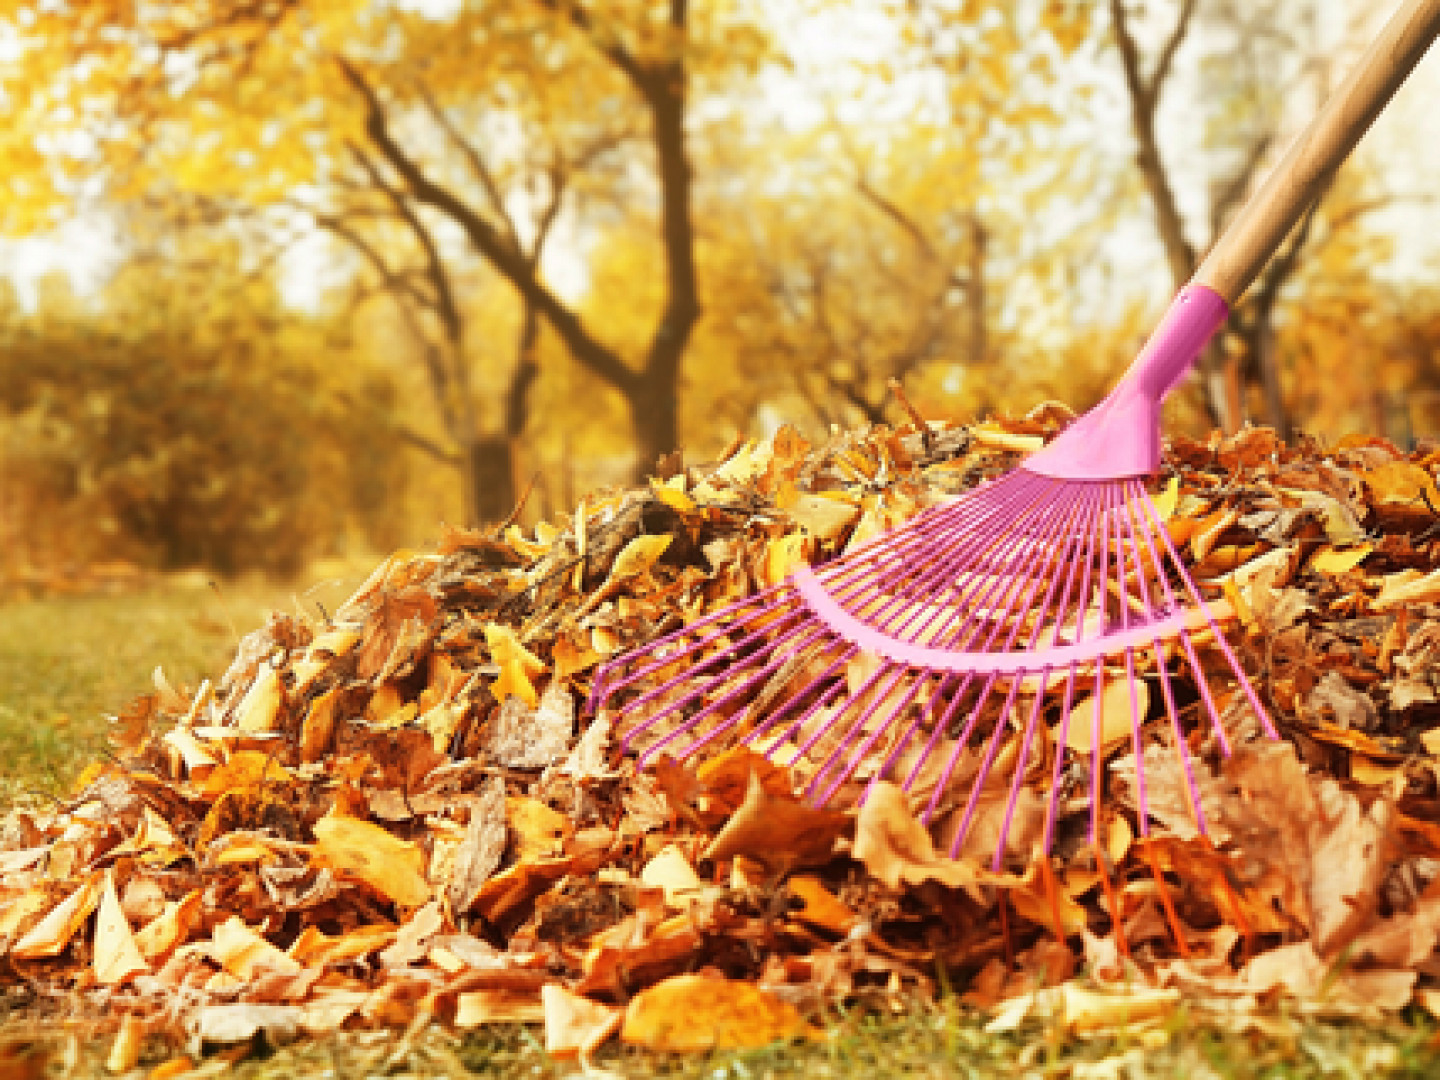 Eliminate unsightly leaves